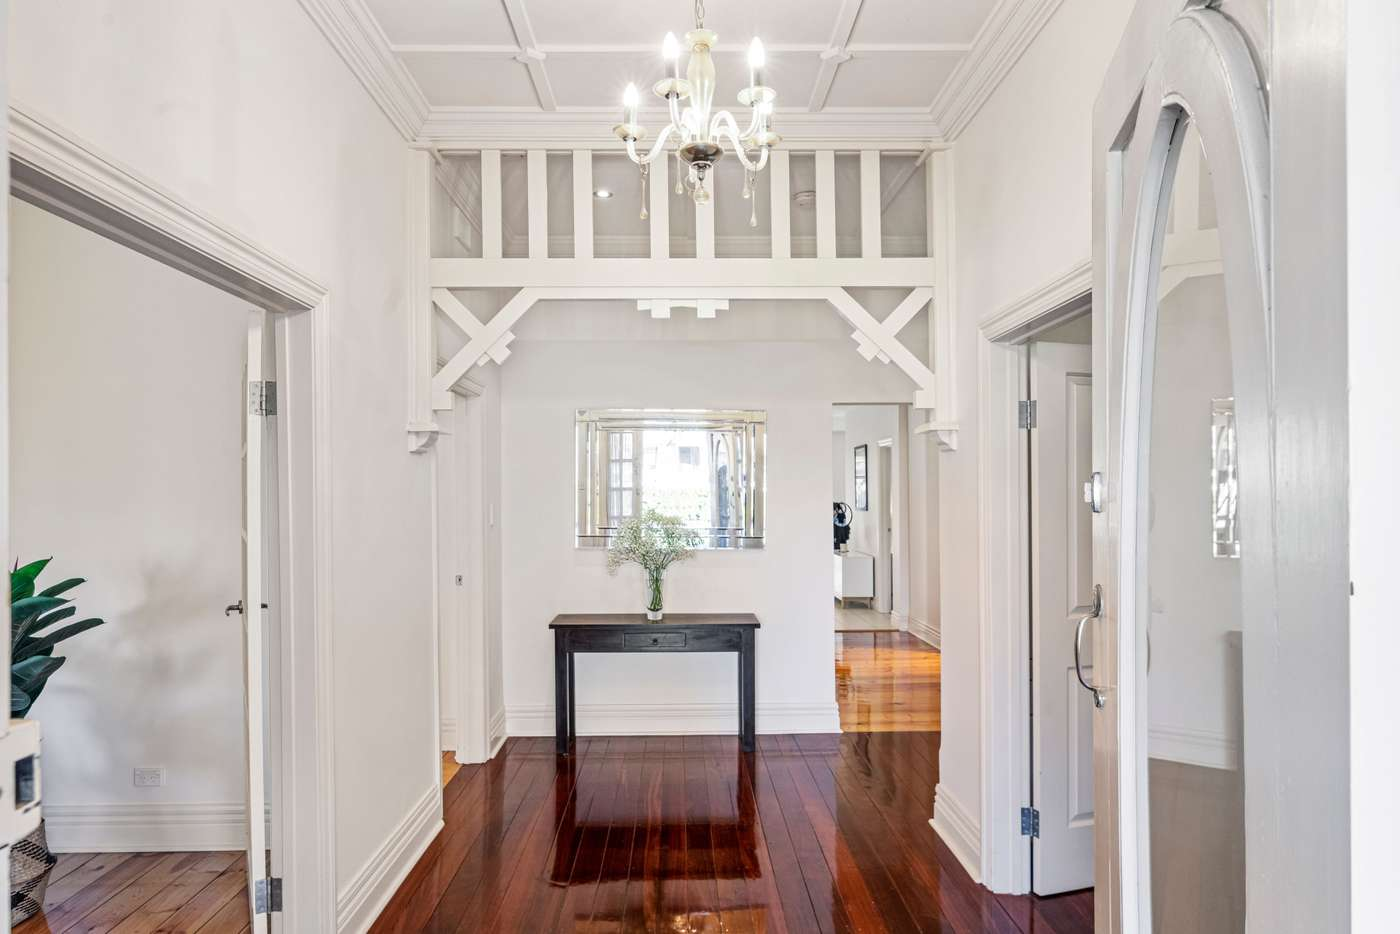 Fifth view of Homely house listing, 18 Glengarry Street, Woodville South SA 5011